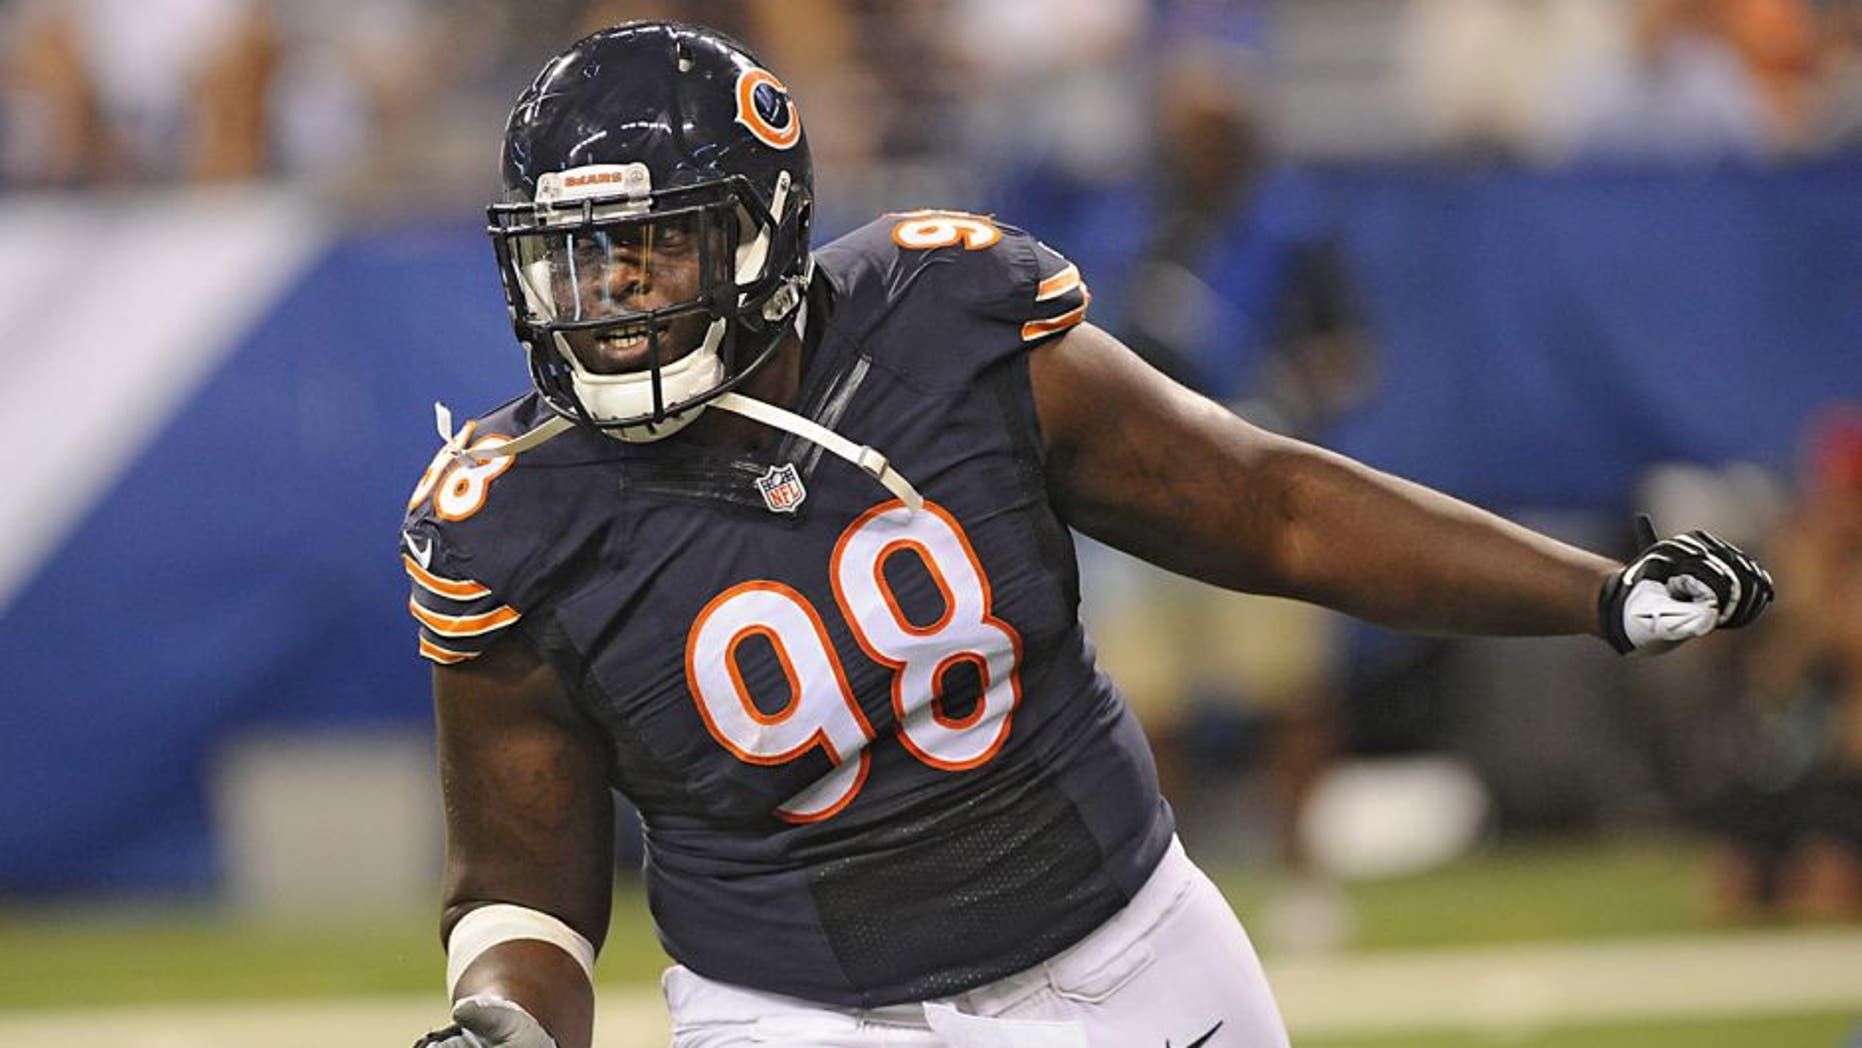 Aug 22, 2015; Indianapolis, IN, USA; Chicago Bears linebacker Brandon Dunn(98) celebrates a fumble recovery against the Indianapolis Colts during a pre season game at Lucas Oil Stadium. Mandatory Credit: Thomas J. Russo-USA TODAY Sports